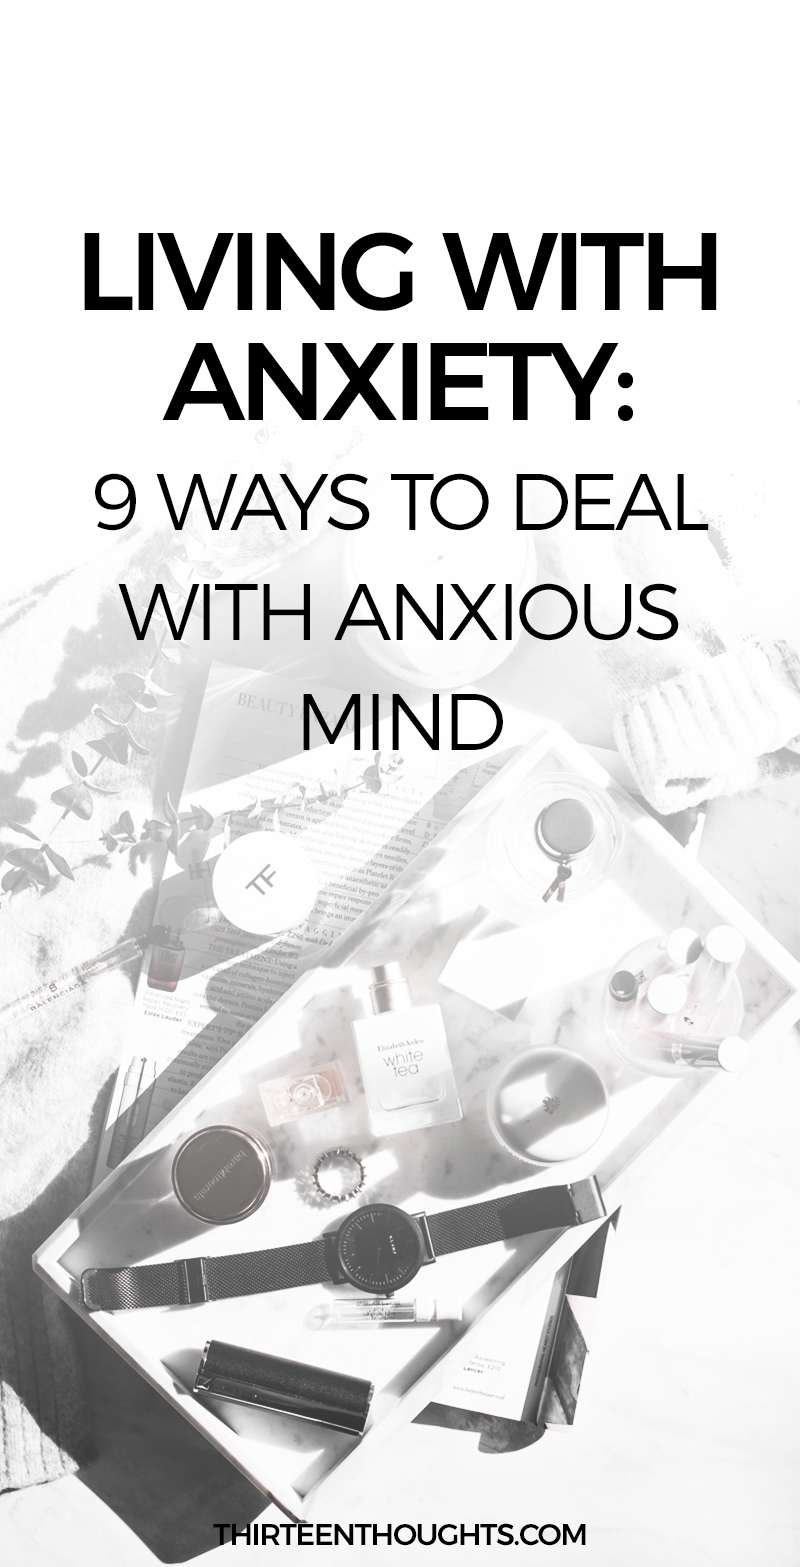 Living With Anxiety: 9 Ways to Deal With Anxious Mind